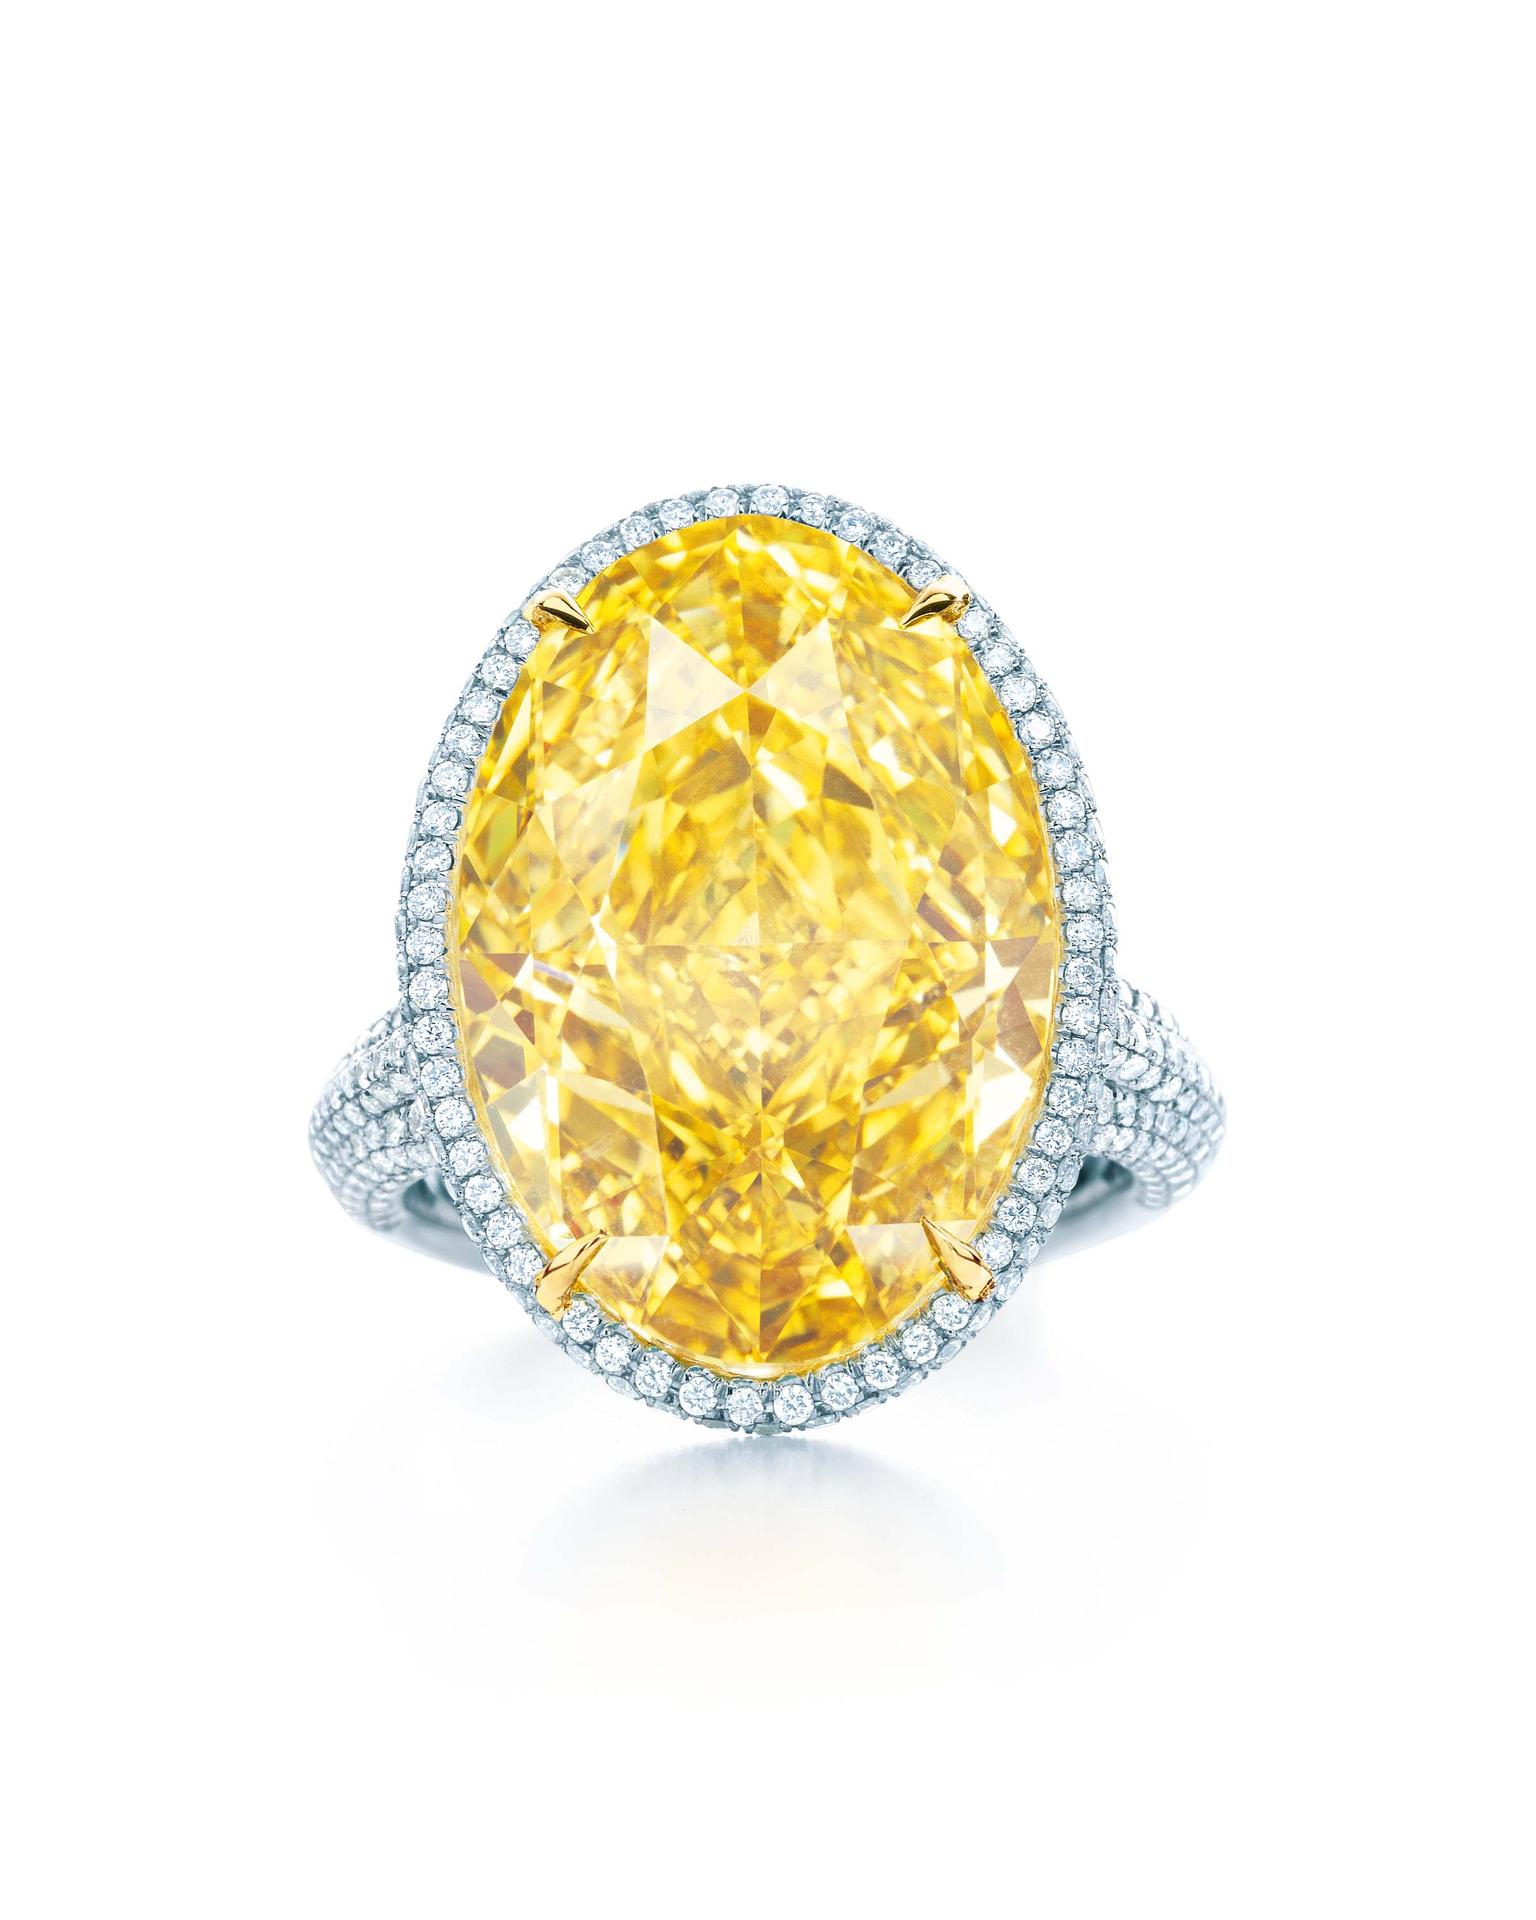 Tiffany & Co. Blue Book Collection 15.04ct Fancy Vivid yellow diamond ring set in platinum and gold (£POA)